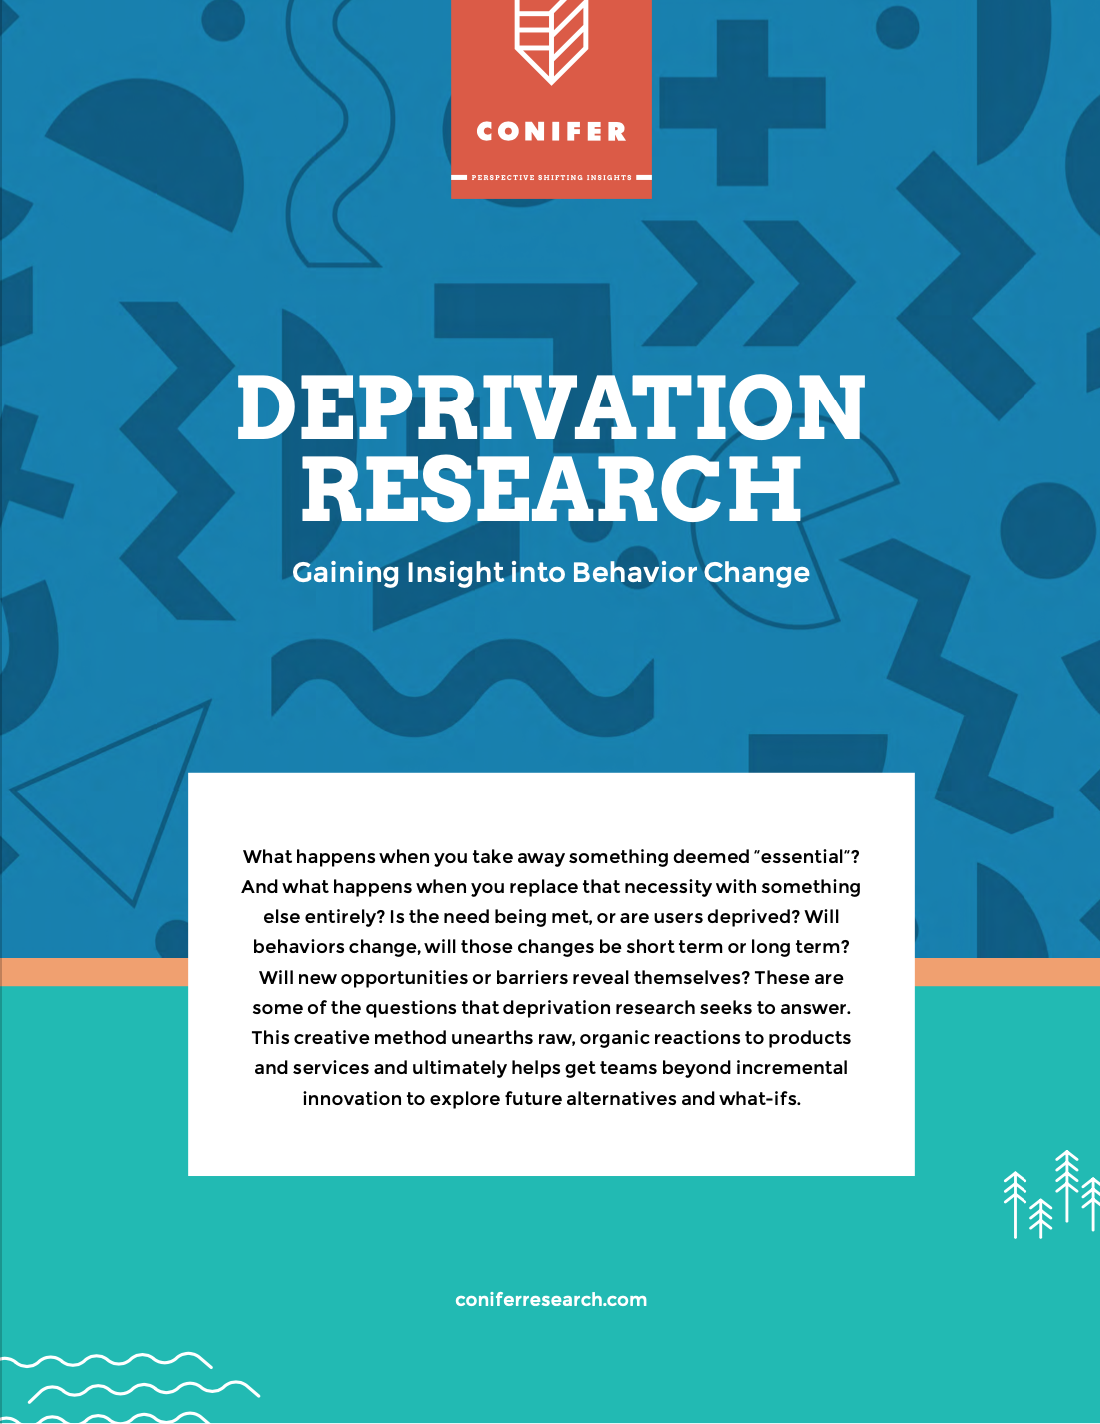 Deprivation Research